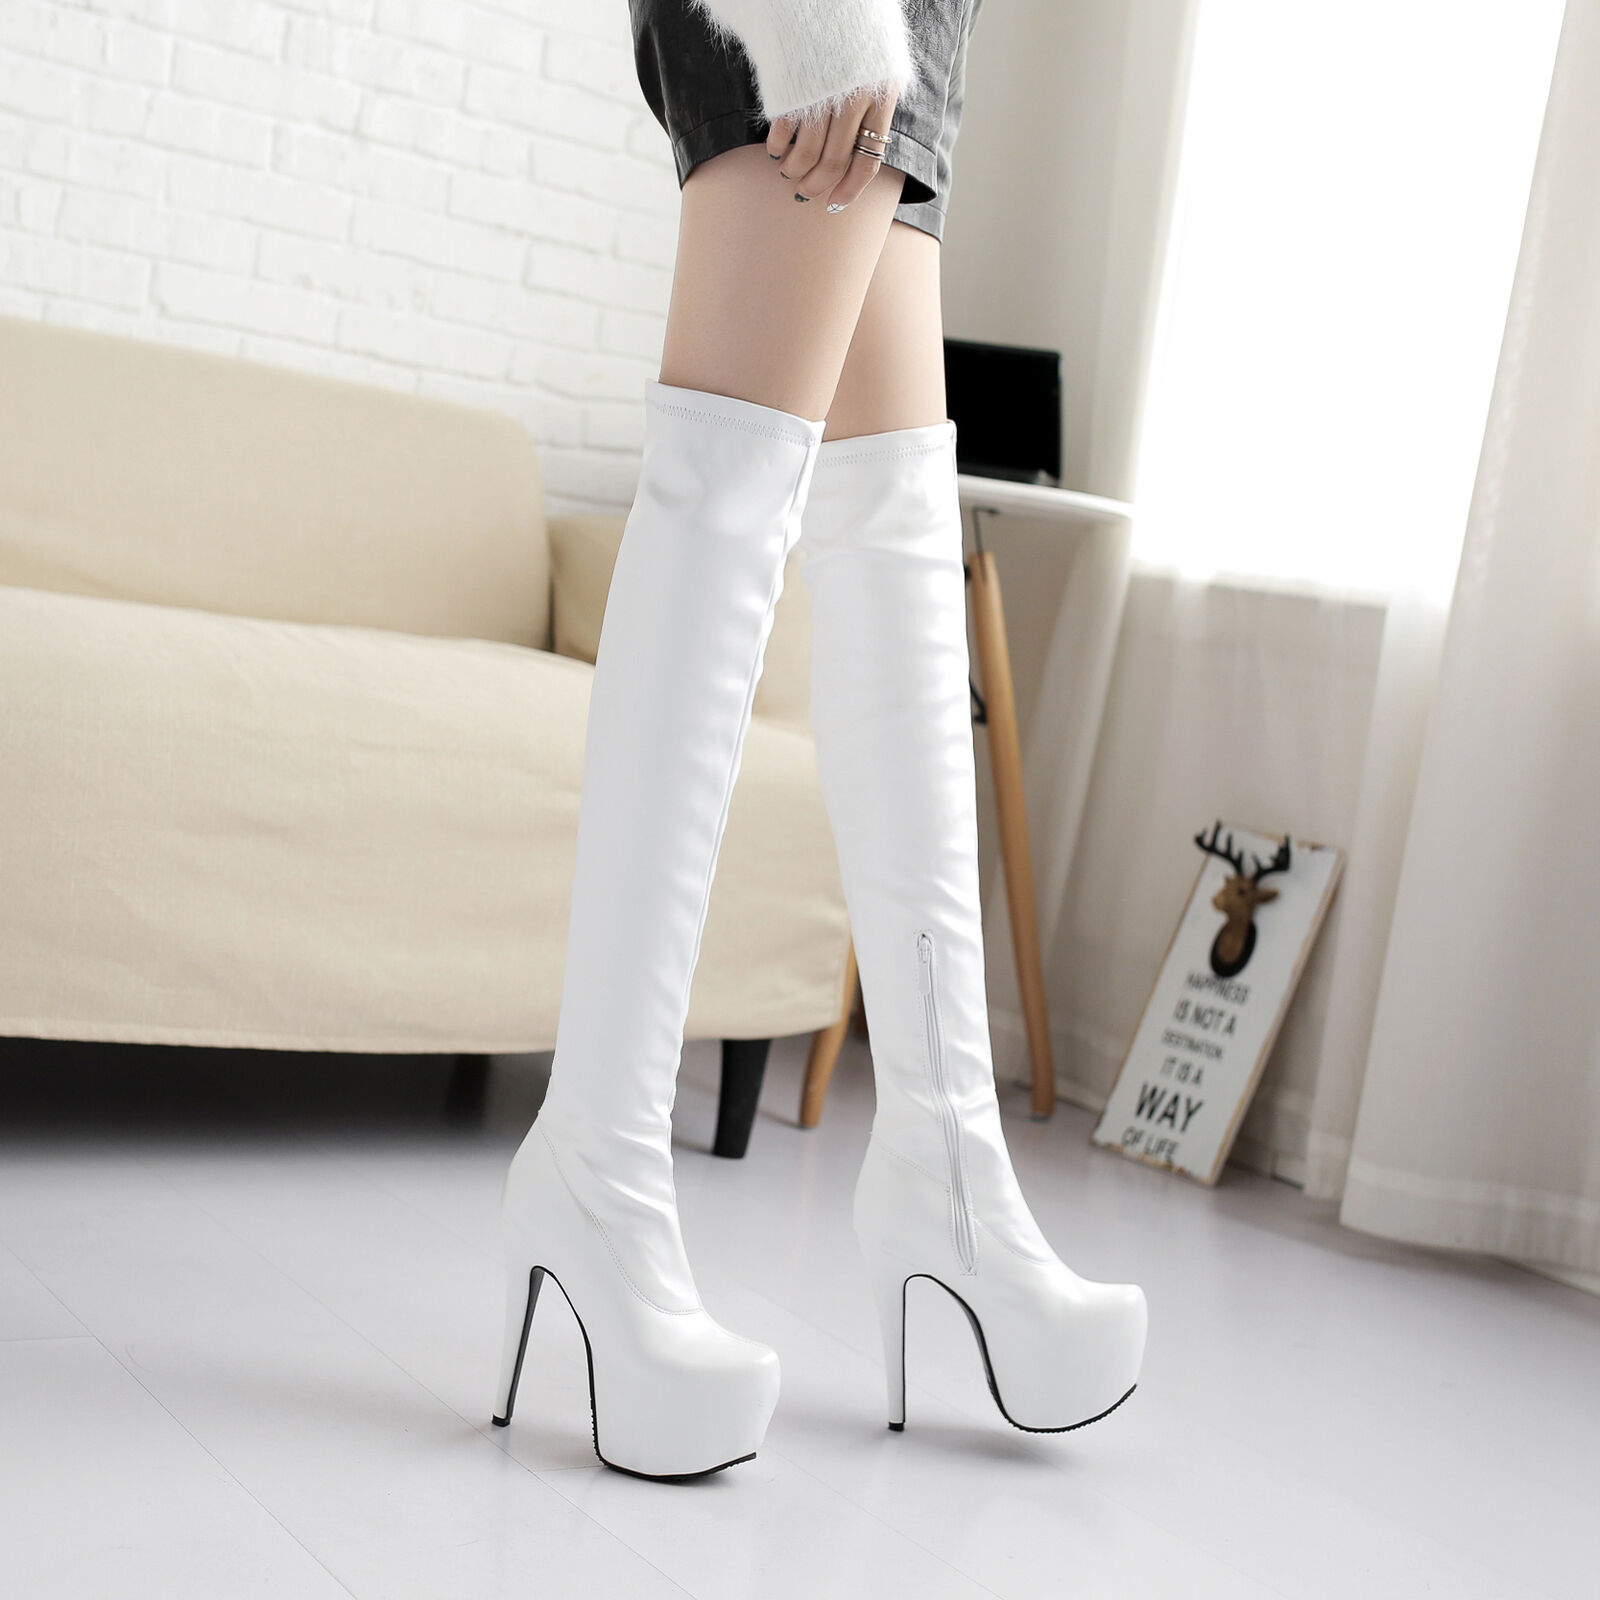 2019 New Donna Leather Club Shoes Synthetic Leather Donna High Heels Zip Over Knee Boots 37e7ef